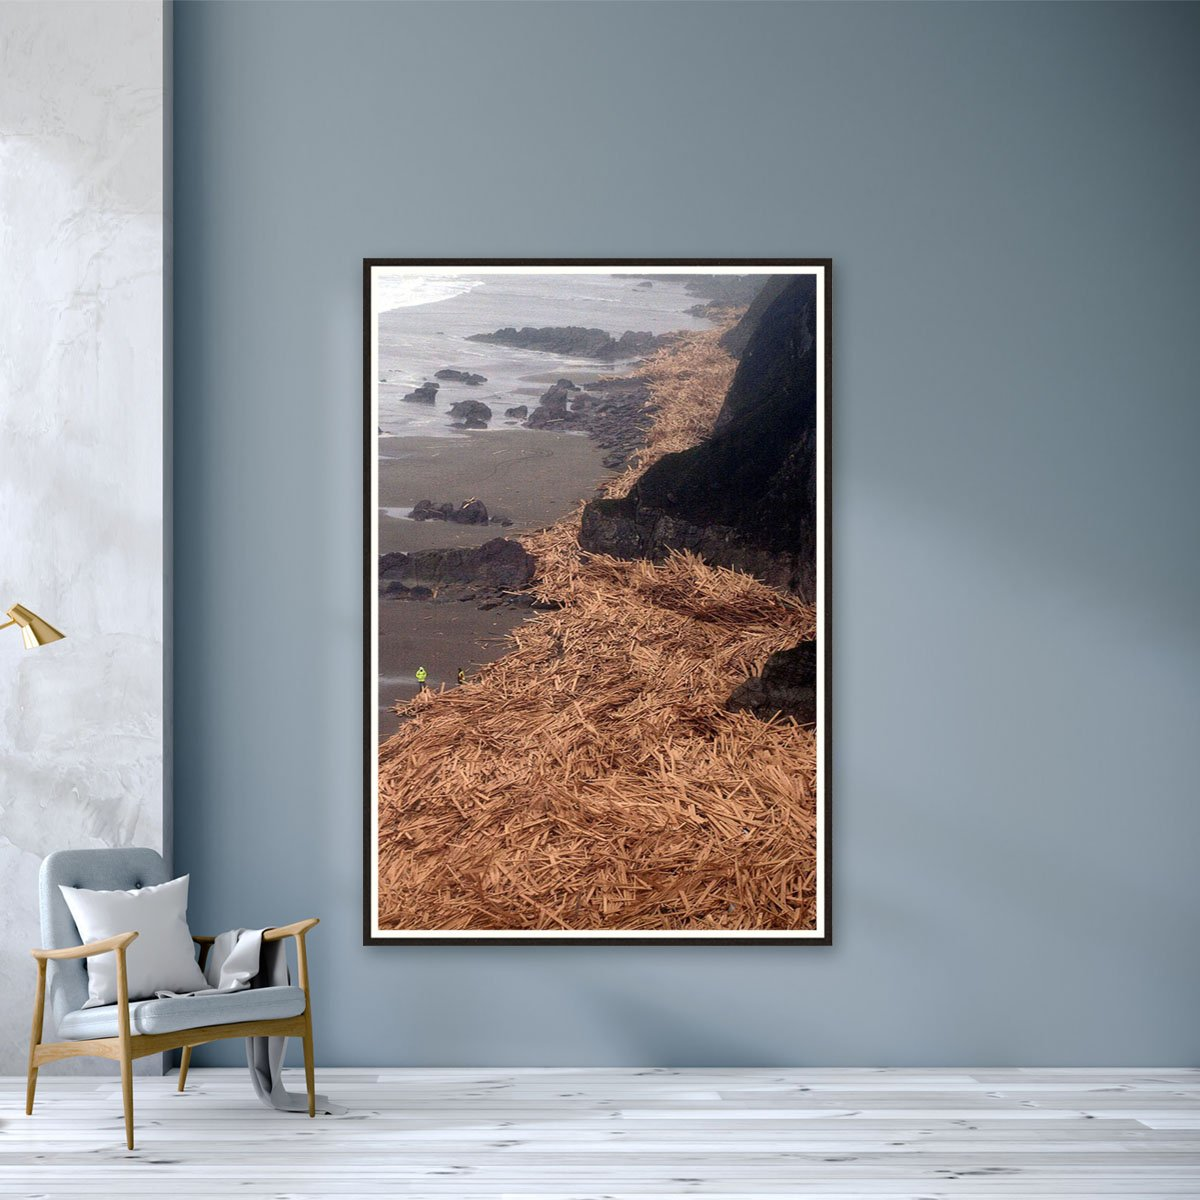 Match Wood On The Beach by Richard Lappas